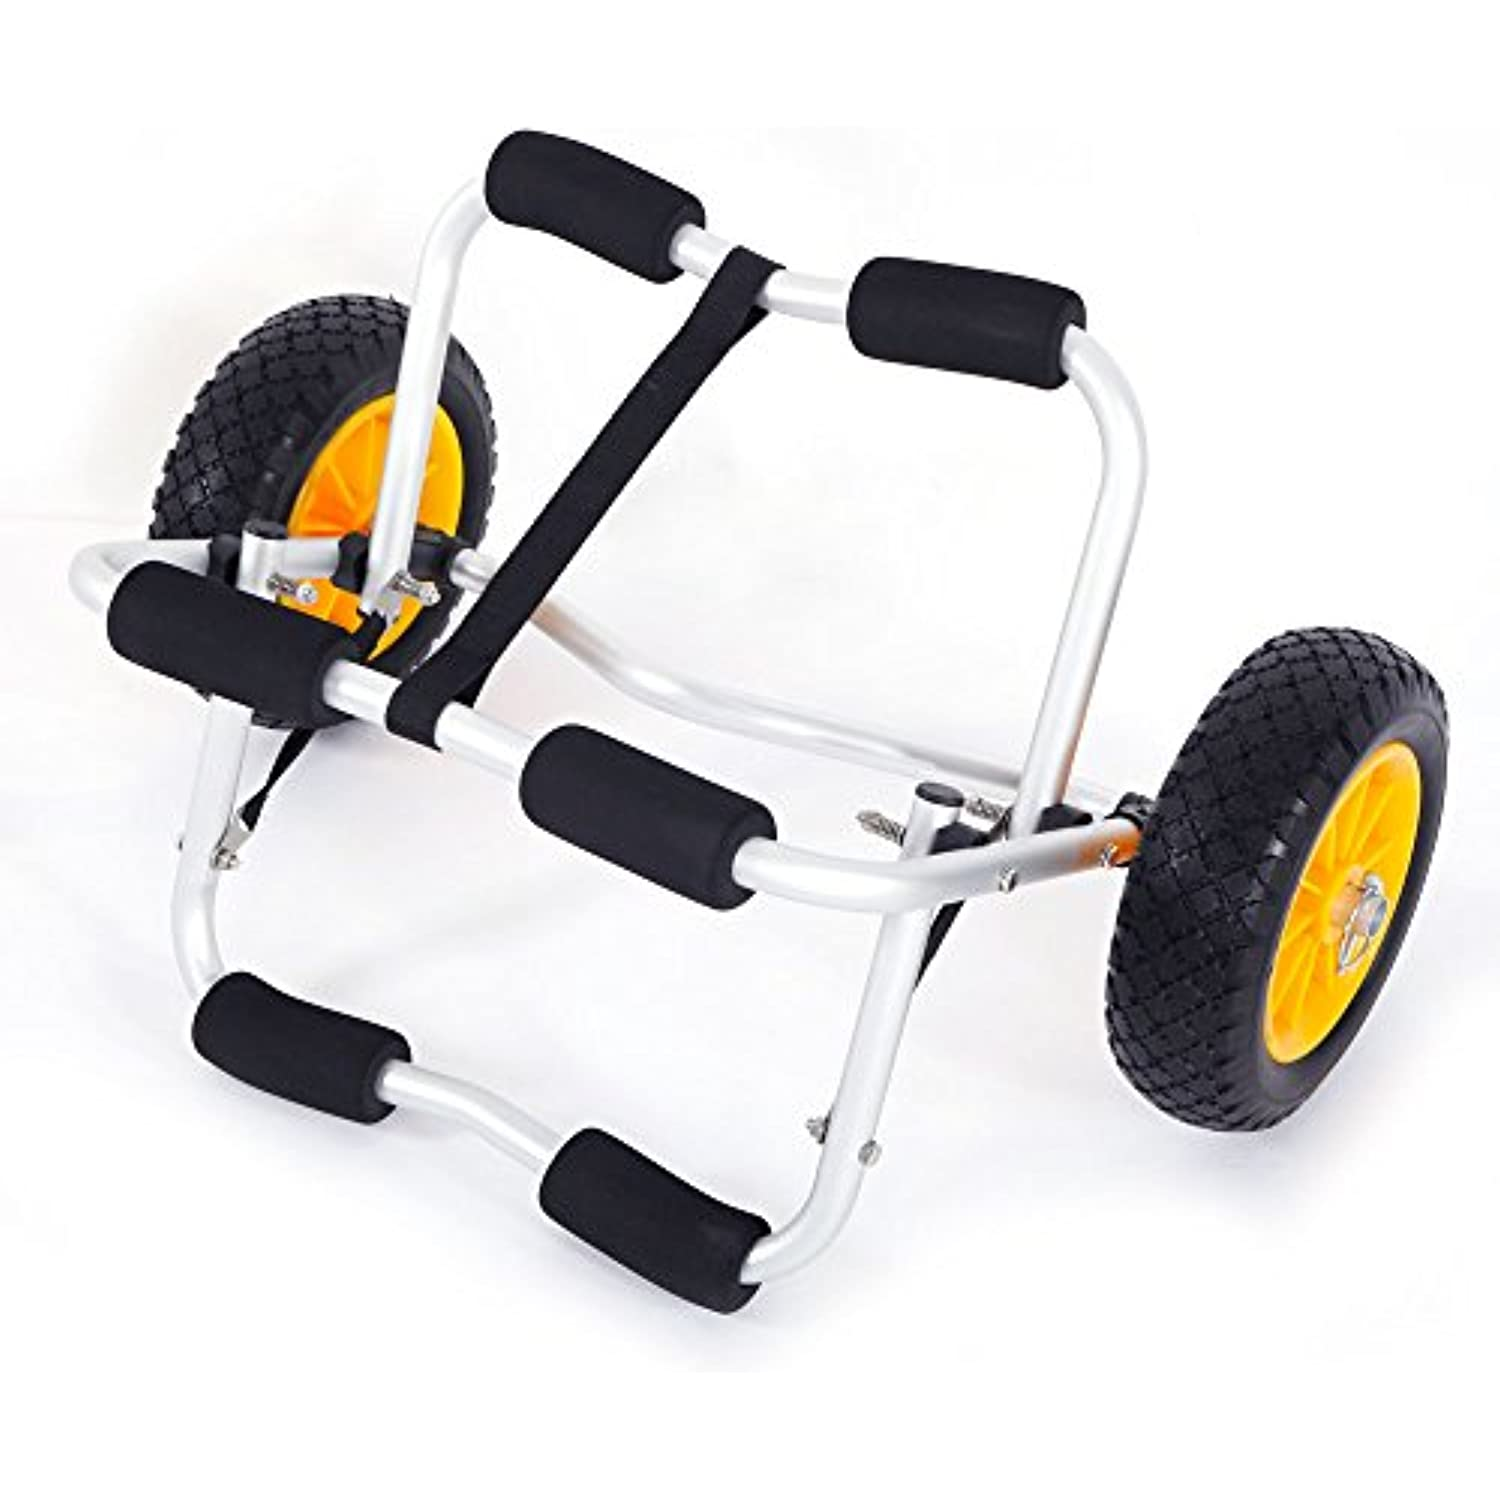 Binrrio Kayak Cart, Portable Folding Boat Kayak Canoe Tote Trolley Carrier Heavy Duty Aluminum Alloy Dolly Trailer Removable 2 Wheels Kayak Transport Cart with Ratchet Straps Silver